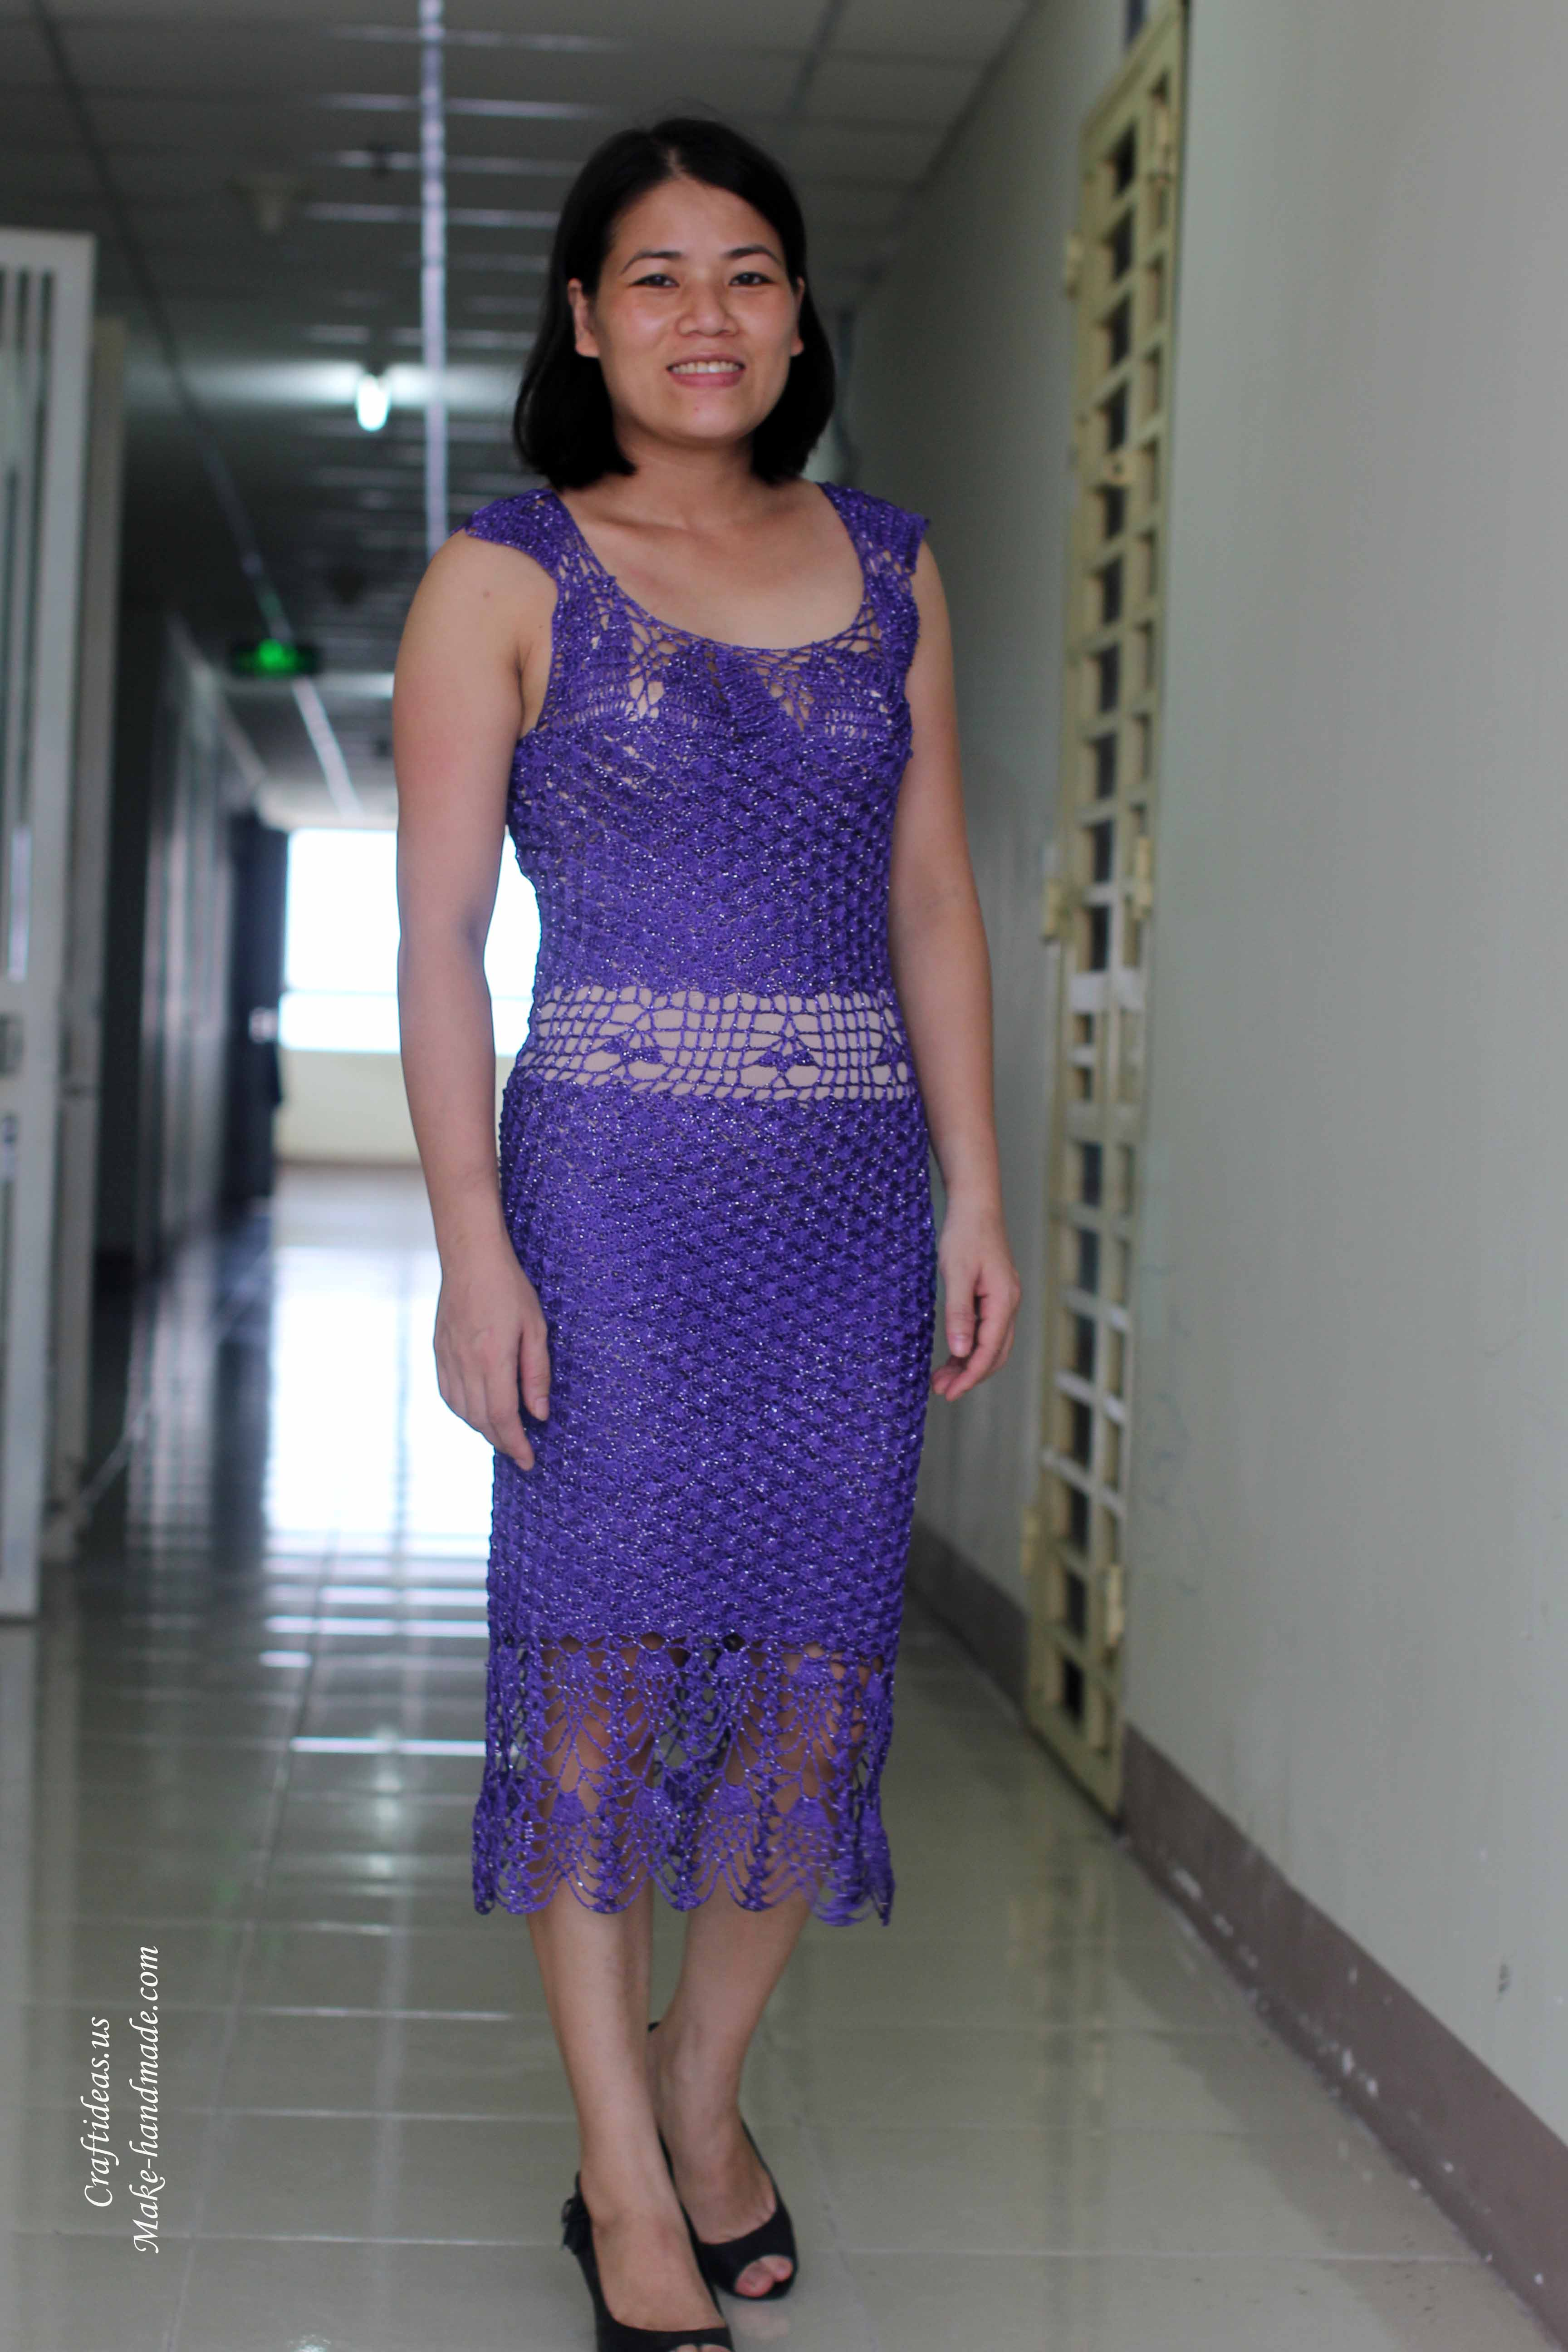 Crochet lovely purple dress for party - Craft Ideas